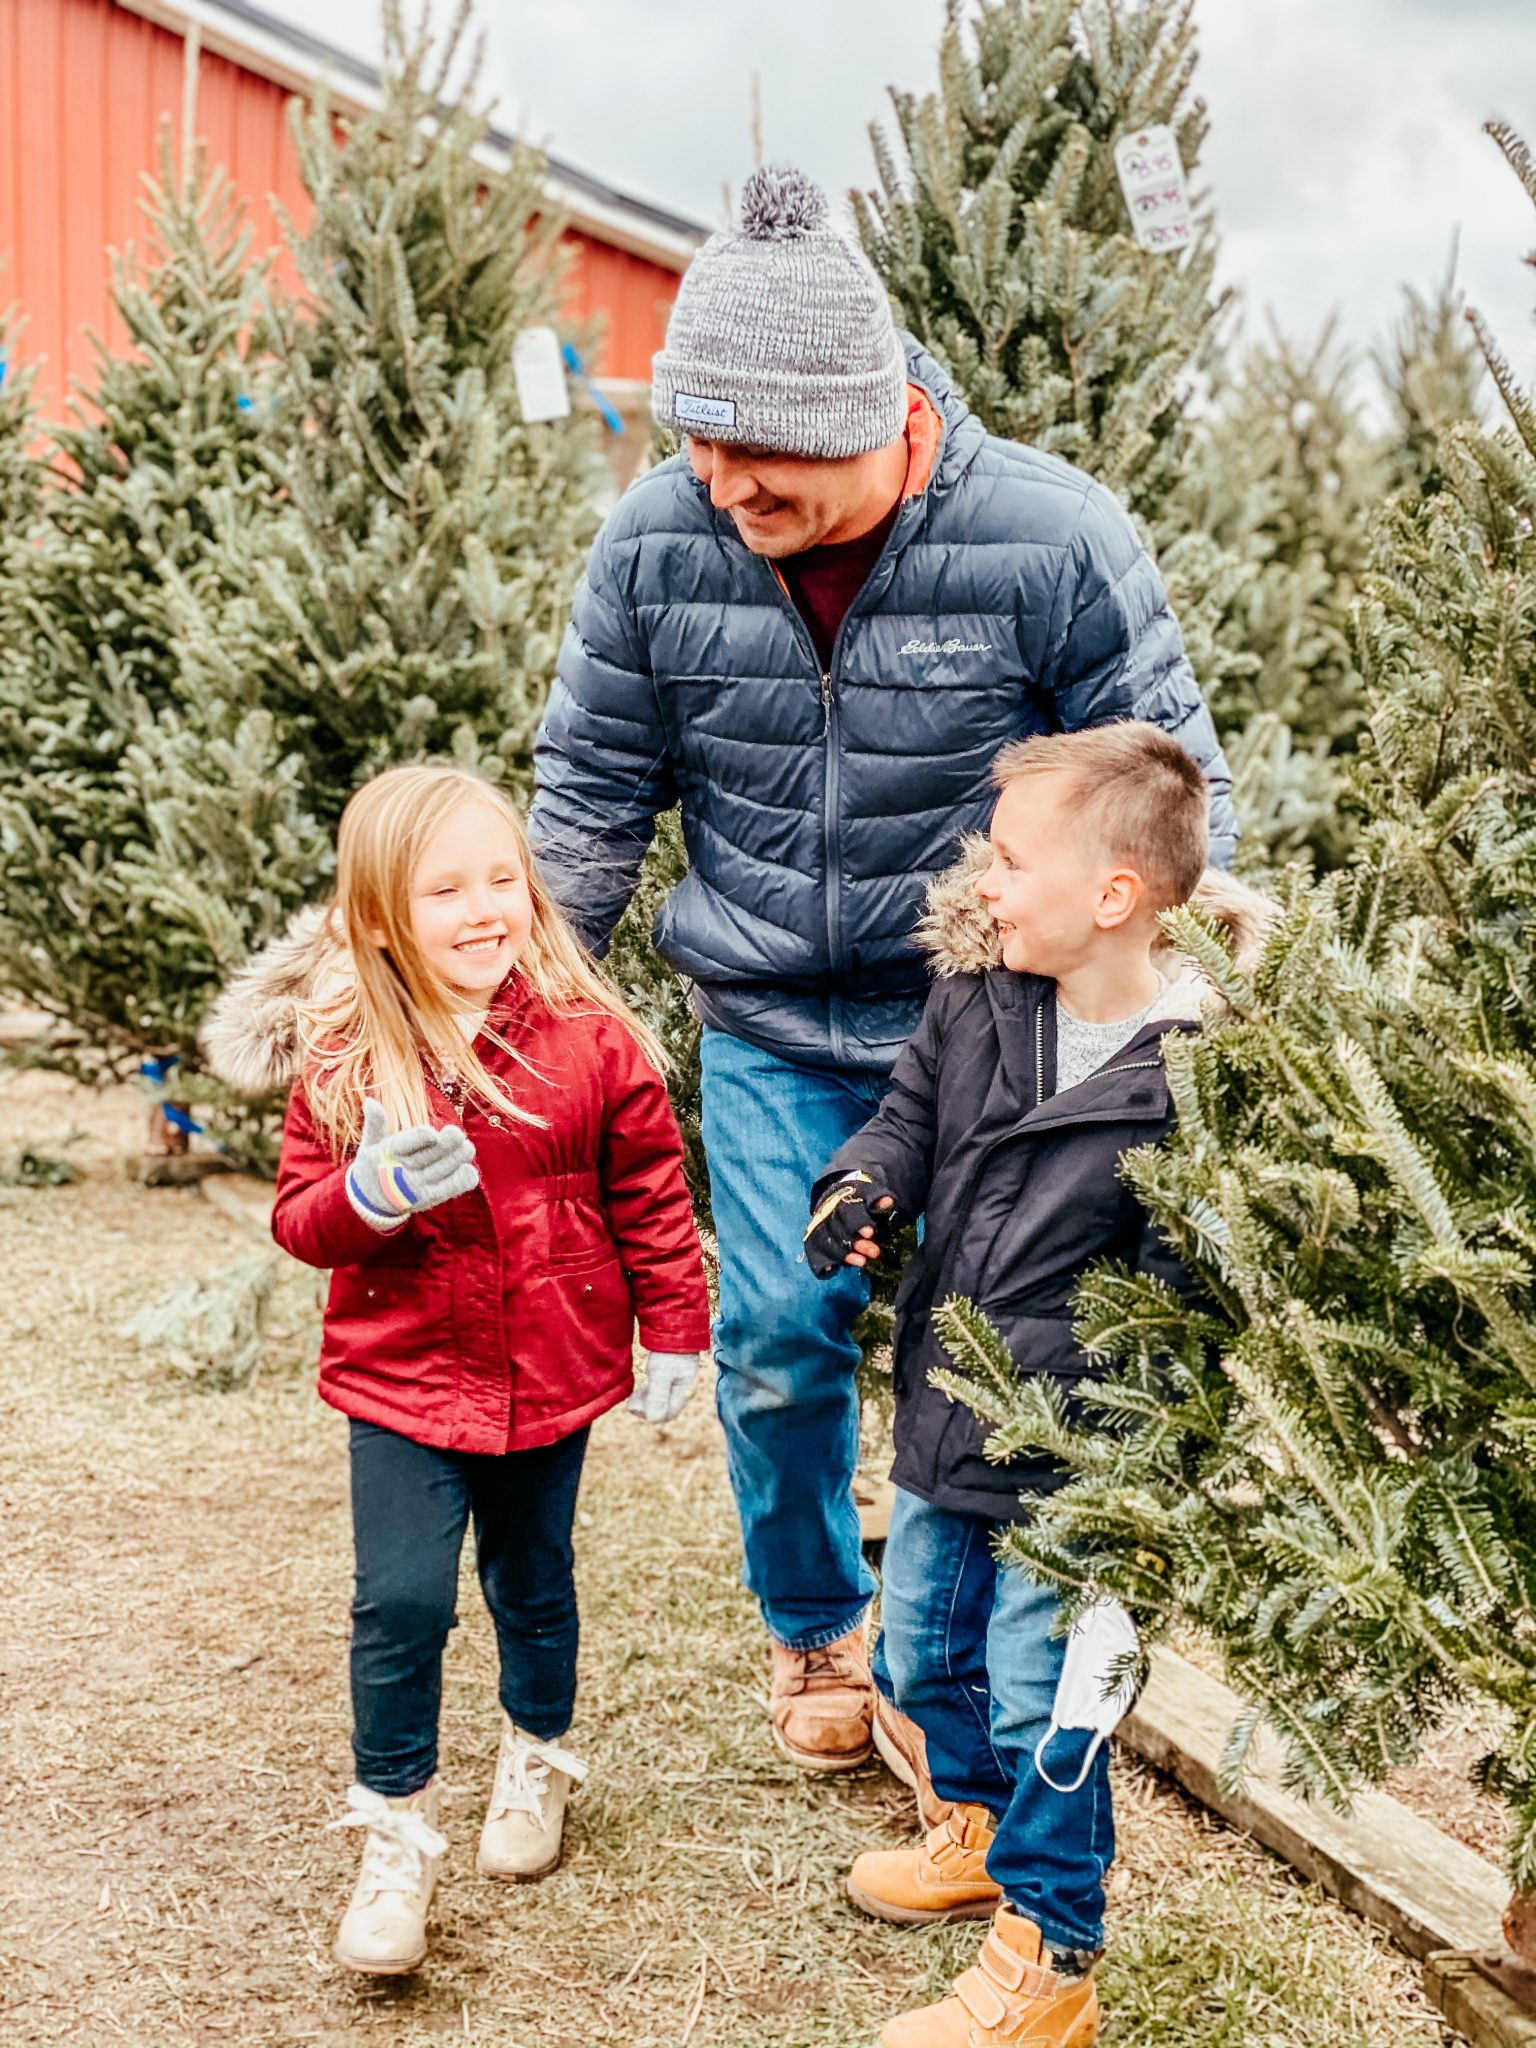 Winter outings with the family | Daily Splendor Life and Style Blog | Dad and Kids #familychristmas #holidayfestivities #familyadventures #chevytahoe #2020activities #lifewith littles #Christmastree #momlife